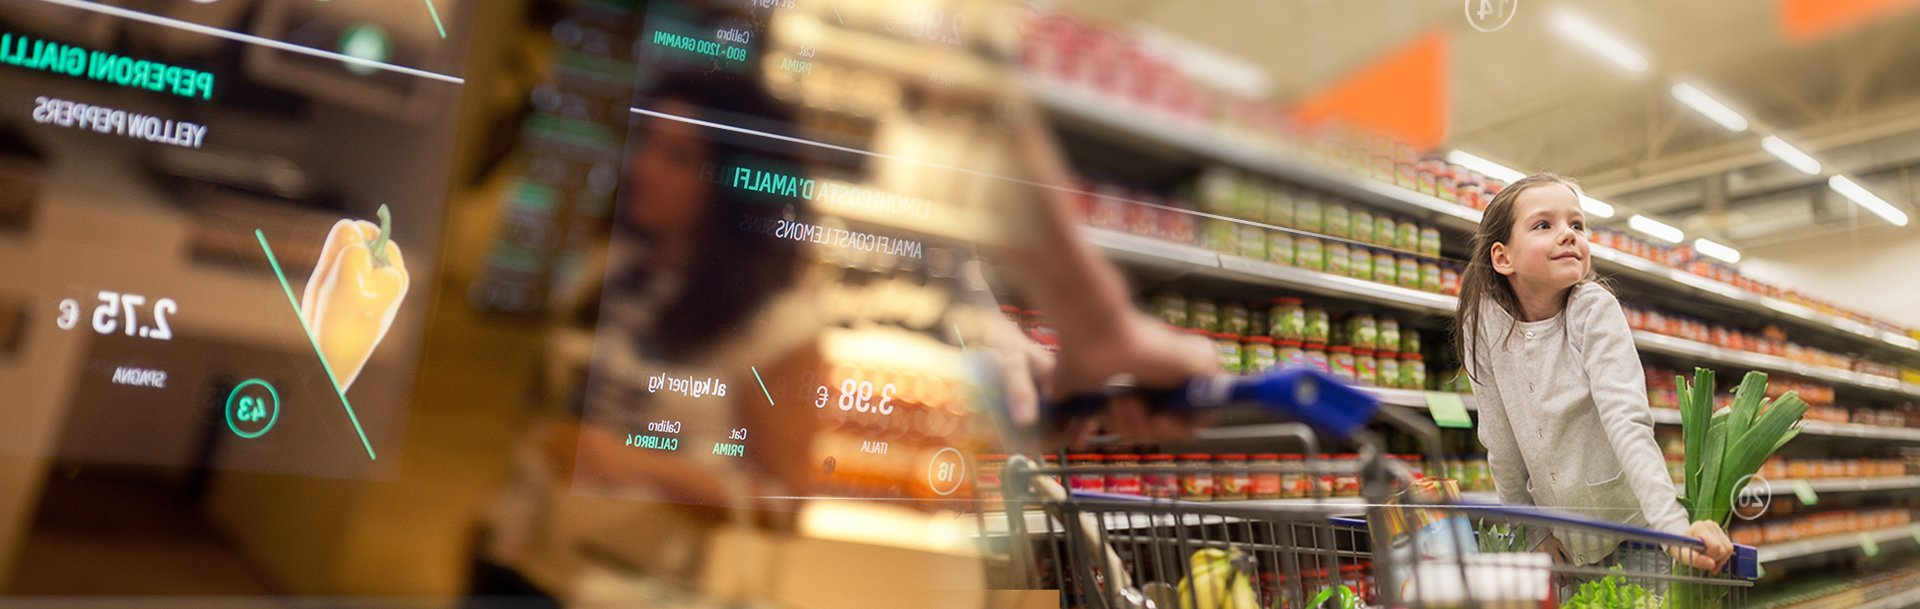 Bring the Power of Modern AI to Retail